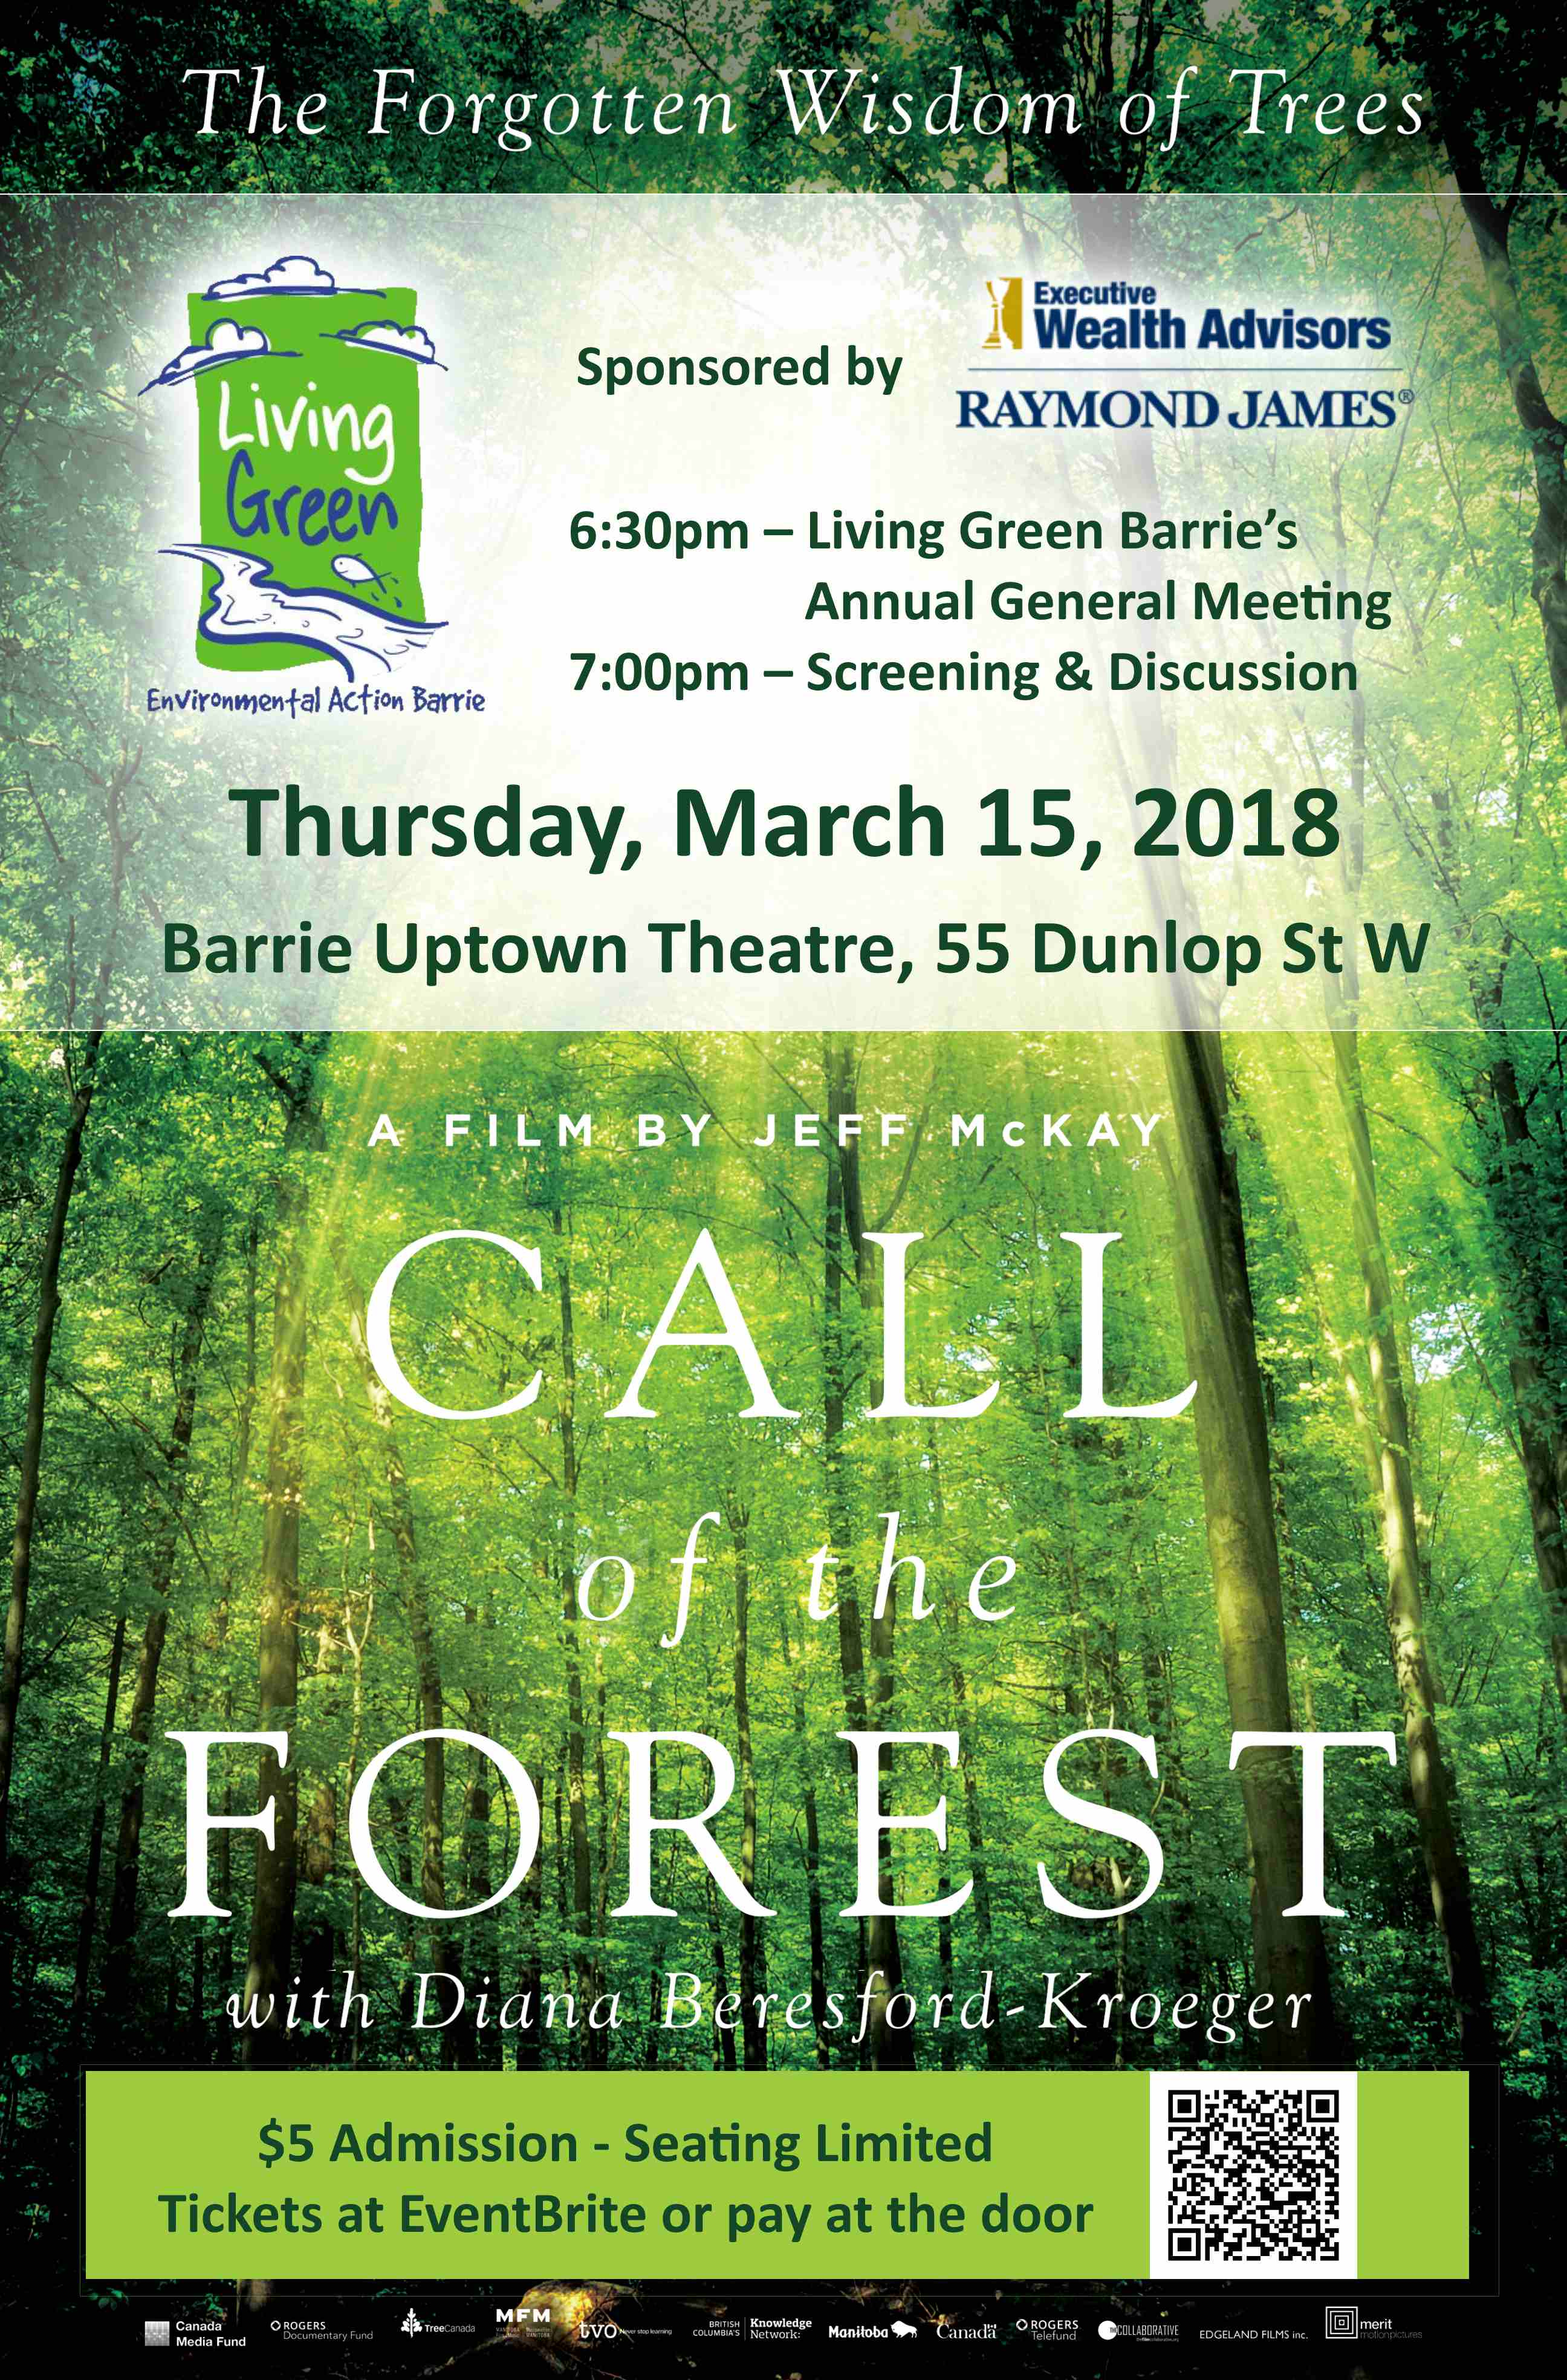 Call of the Forest Living Green film screening March 15 Uptown Theatre Barrie